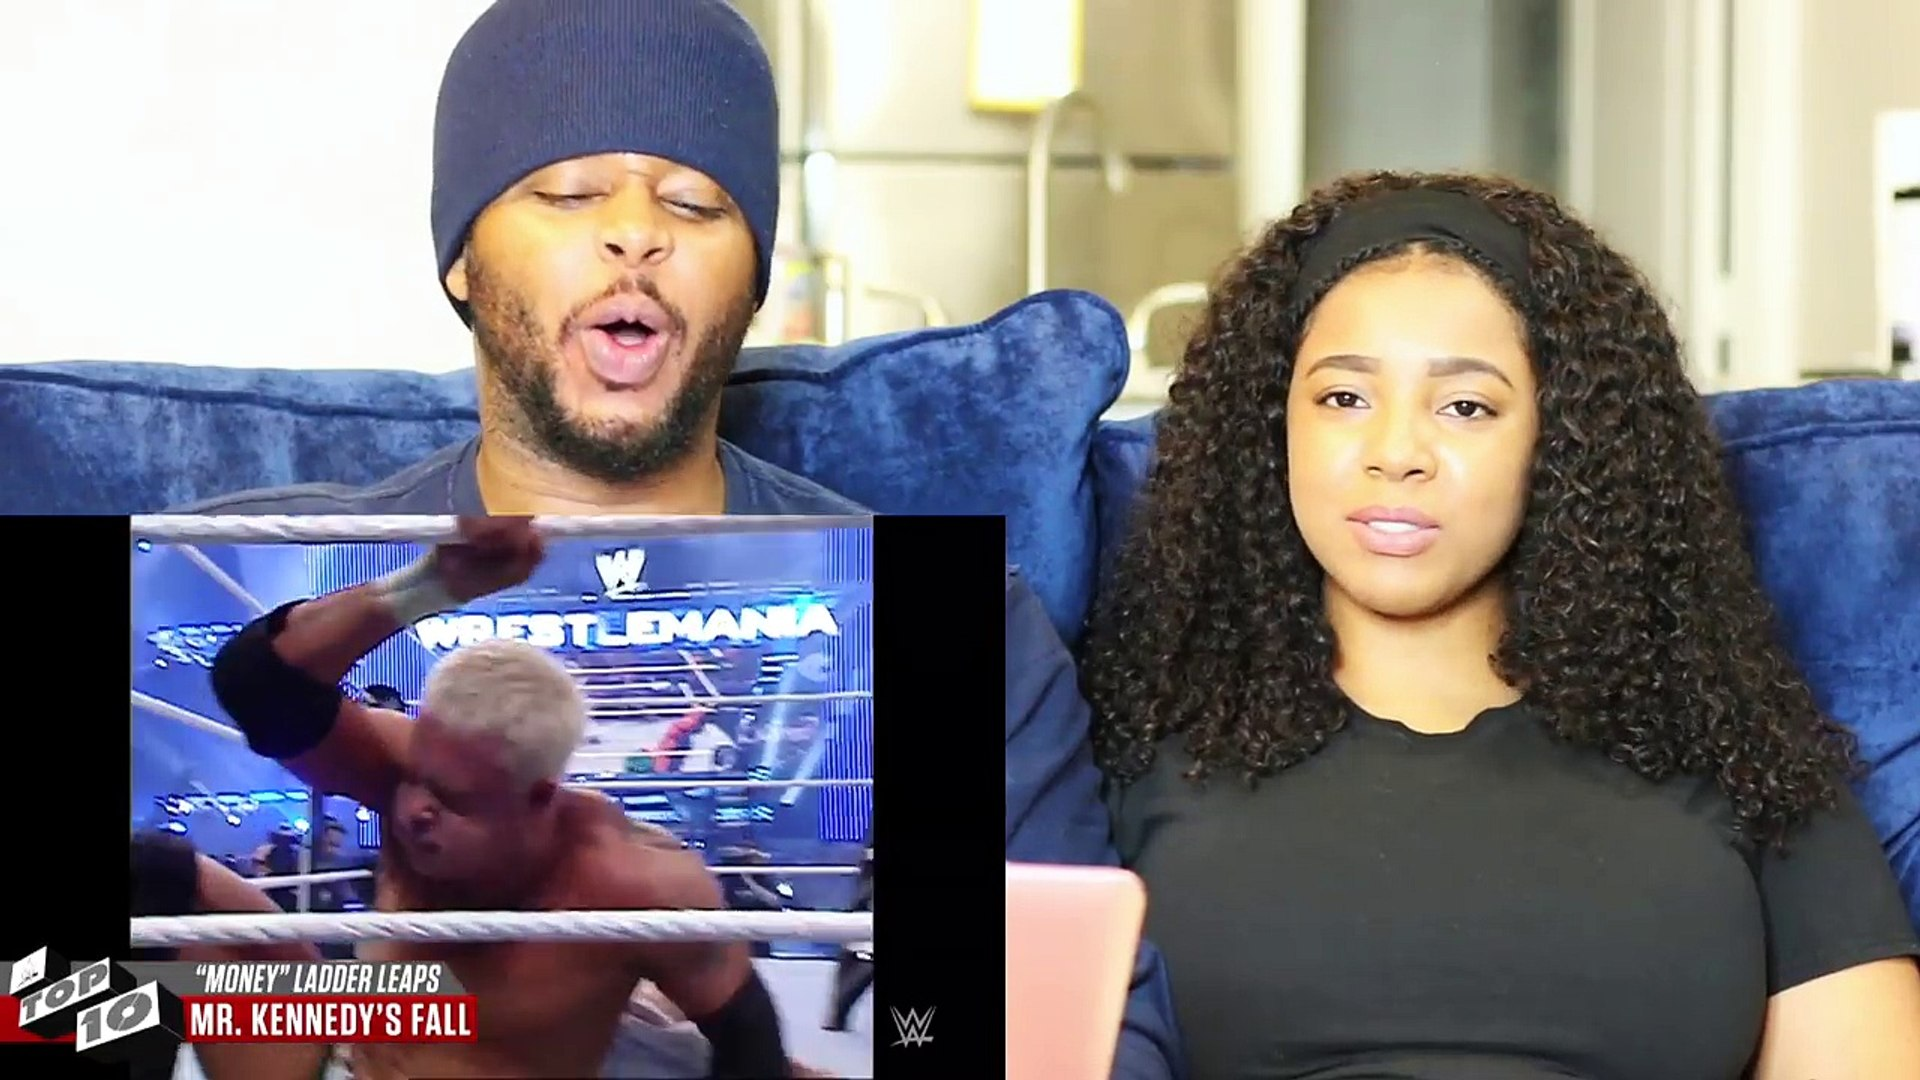 WWE Money in the Bank ladder leaps: WWE Top 10 | Reaction